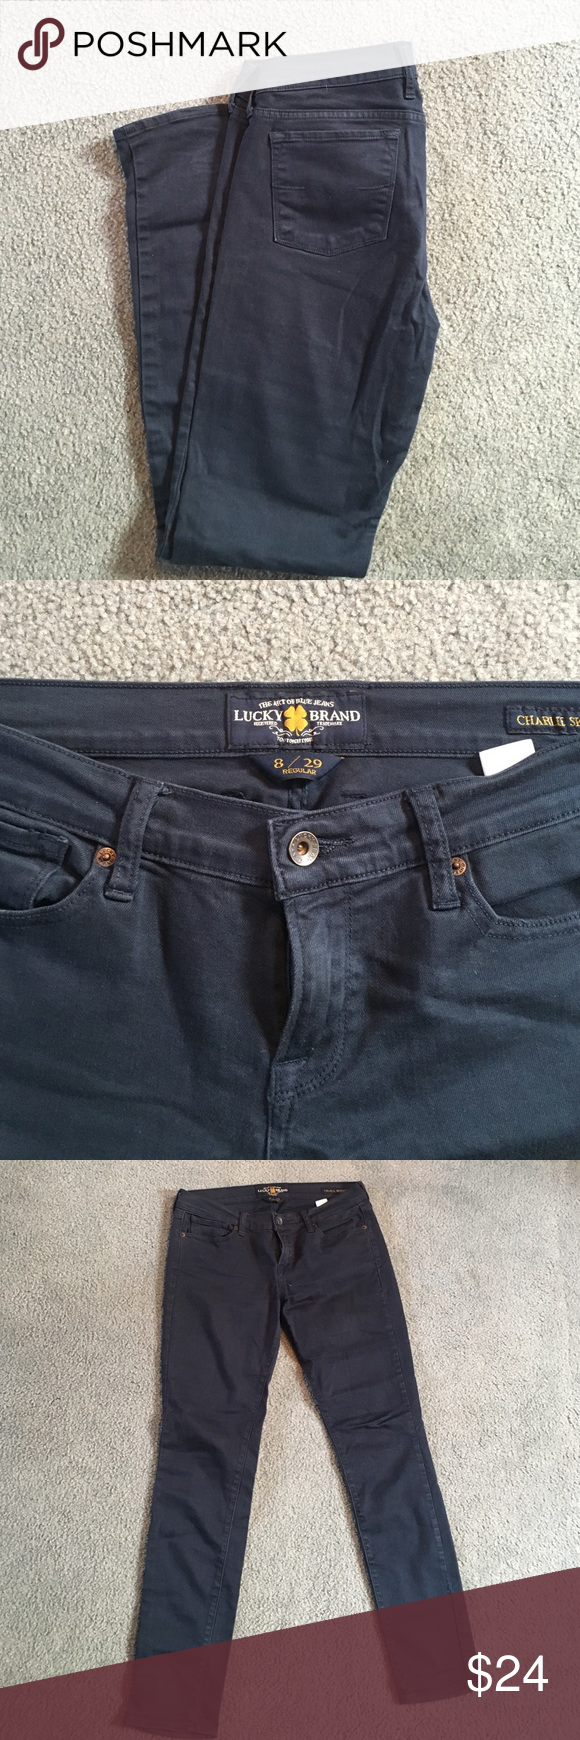 "Navy Lucky Pants Navy ""Charlie skinny"" style with slight bootcut Lucky pants - size 8 / 29! Lucky Brand Pants"